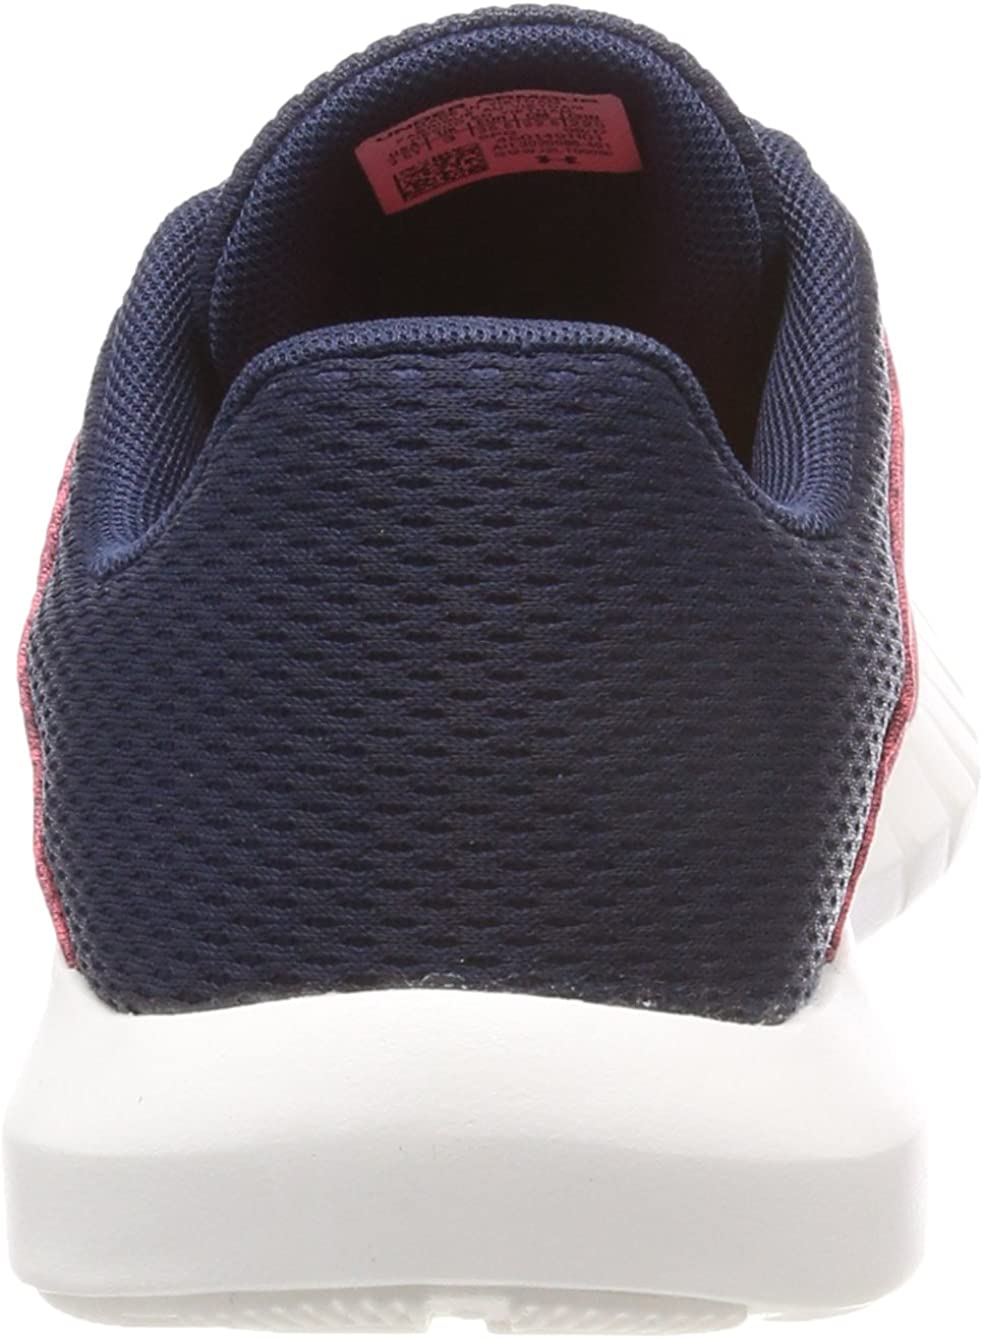 Chaussures de Running Comp/étition Fille Under Armour UA GGS Mojo